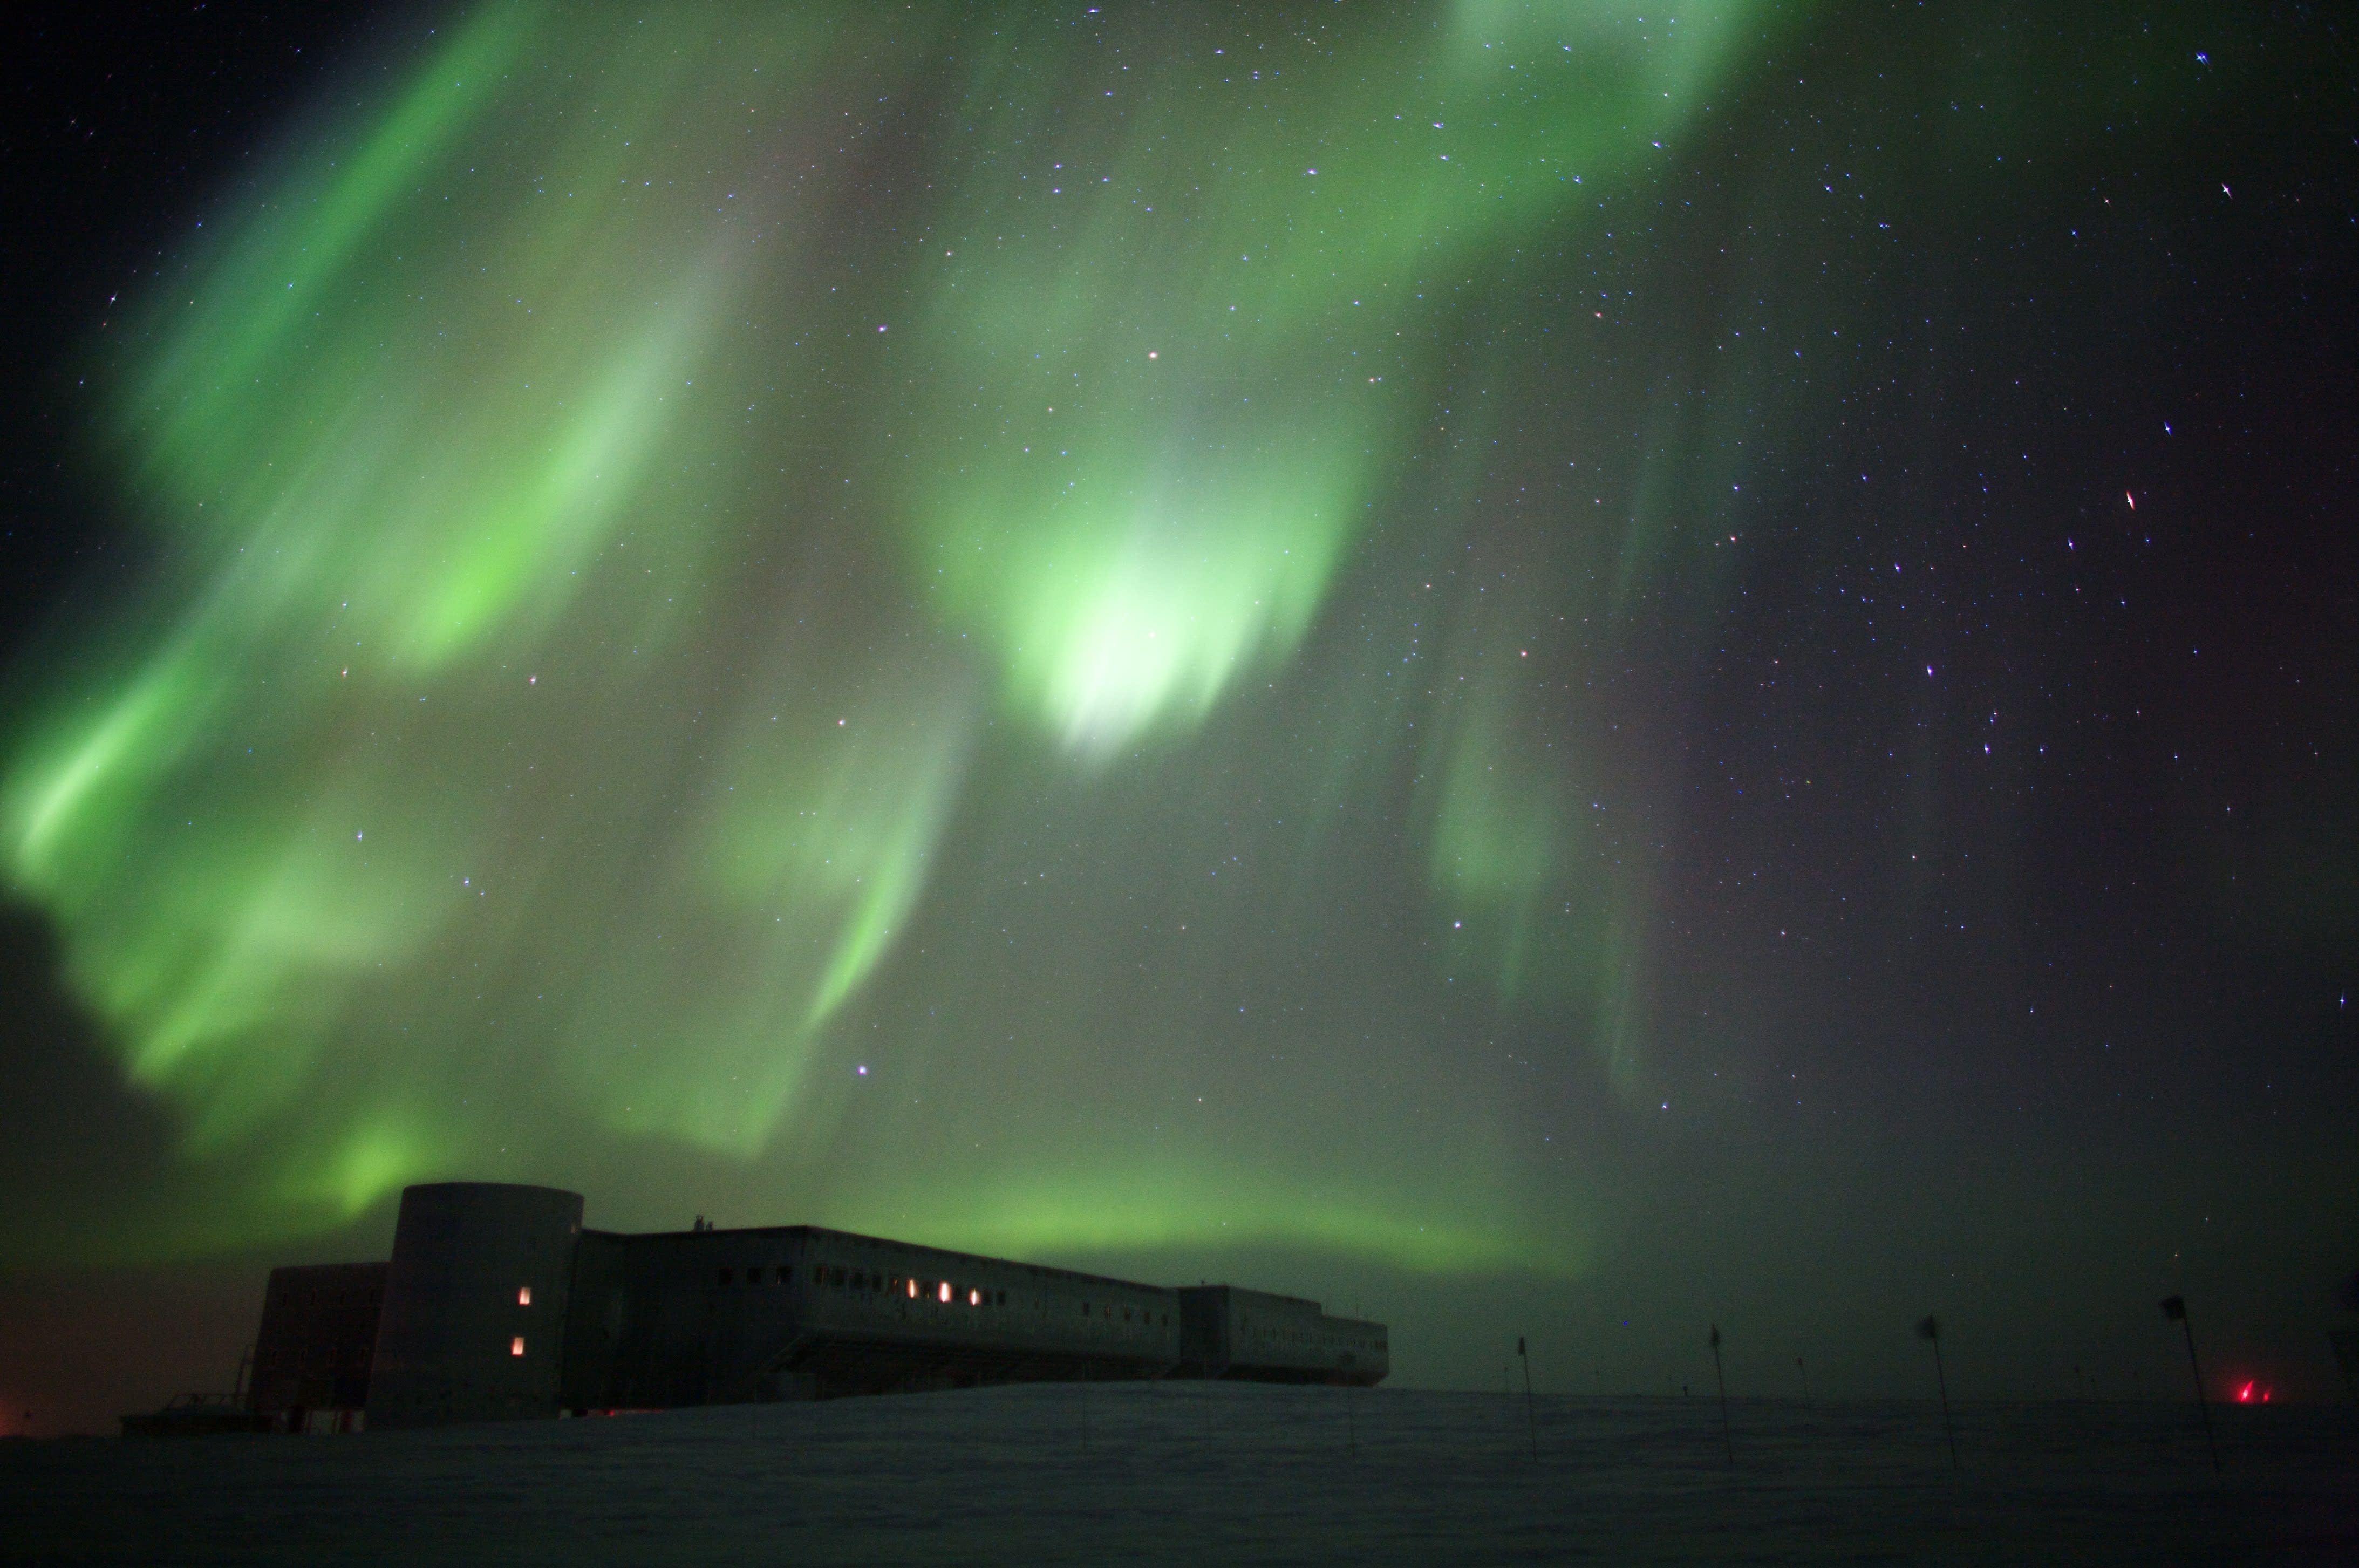 Shimmery auroras over South Pole station